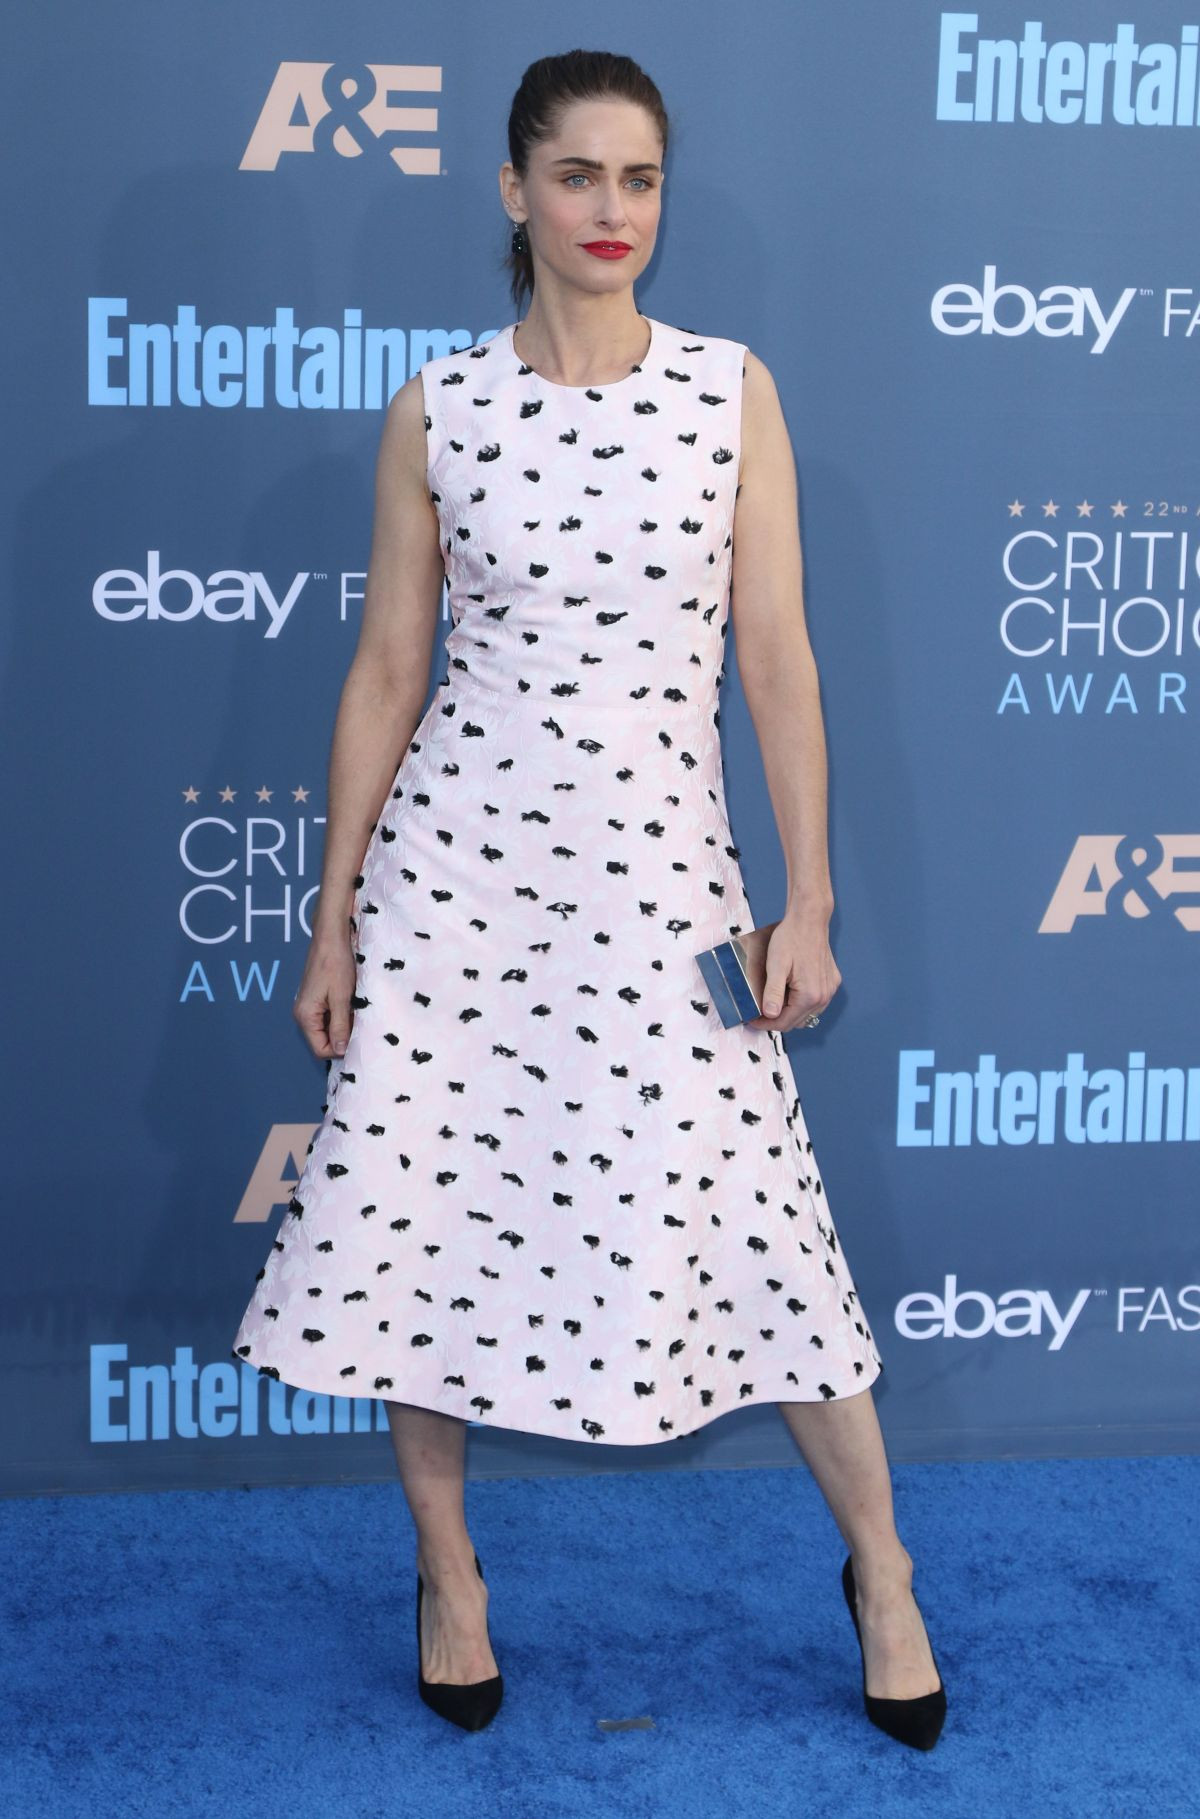 Amanda Peet At The 22nd Annual Critics' Choice Awards in Santa Monica   amanda-peet-at-the-22nd-annual-critics-choice-awards-in-santa-monica-_5